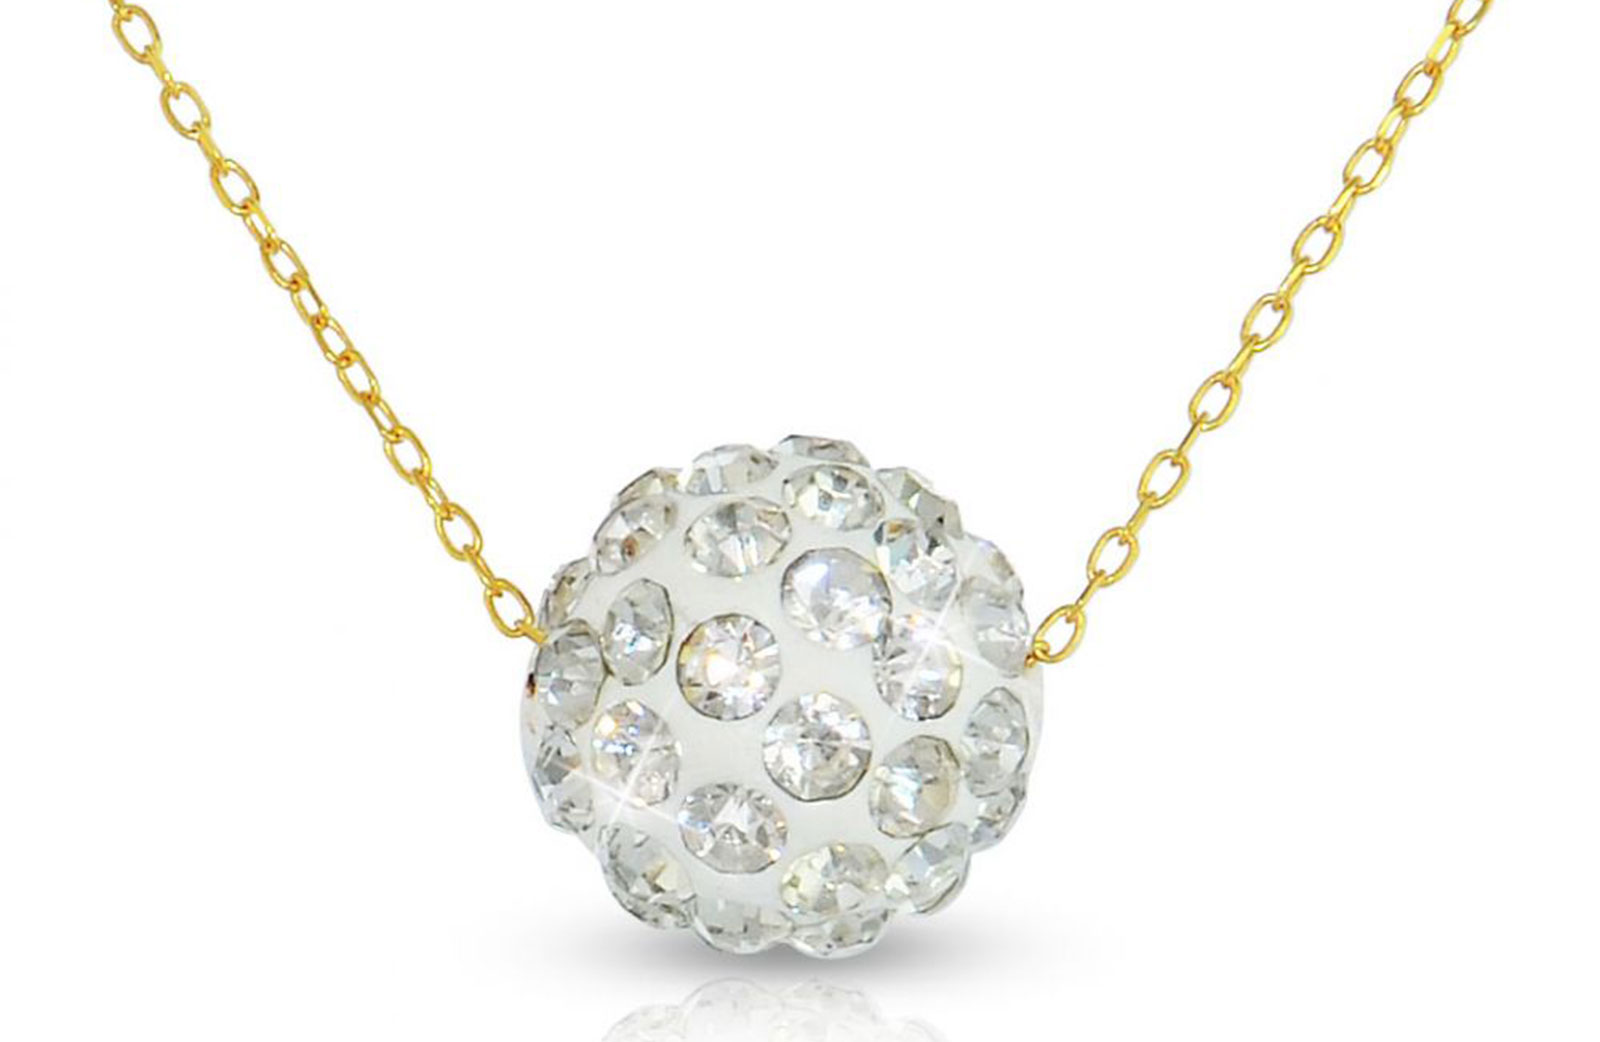 Vera Perla 10K Gold 10mm Simple Crystals Ball Necklace